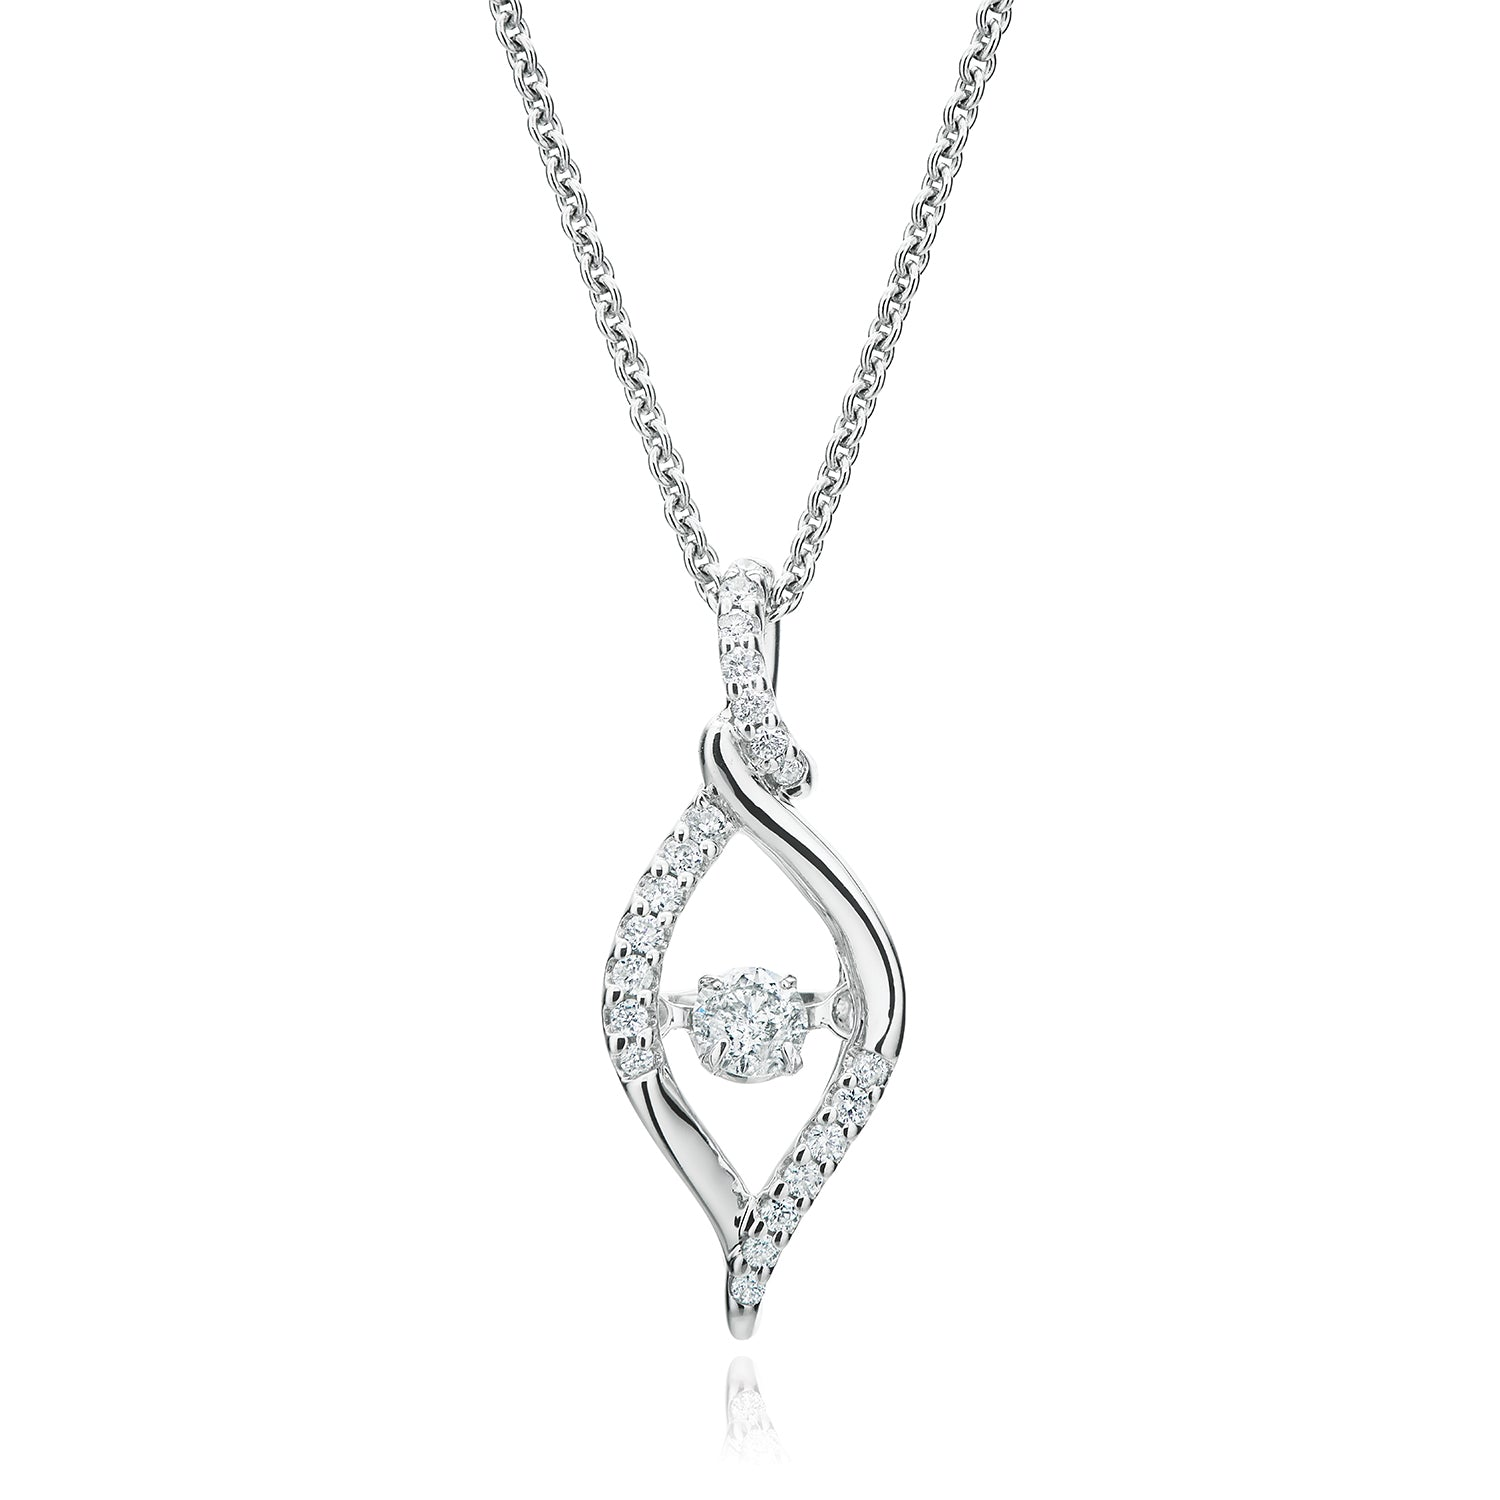 Every Child is a Diamond 9ct White Gold Round Brilliant Cut with 0.20 CARAT tw of Diamond Pendant